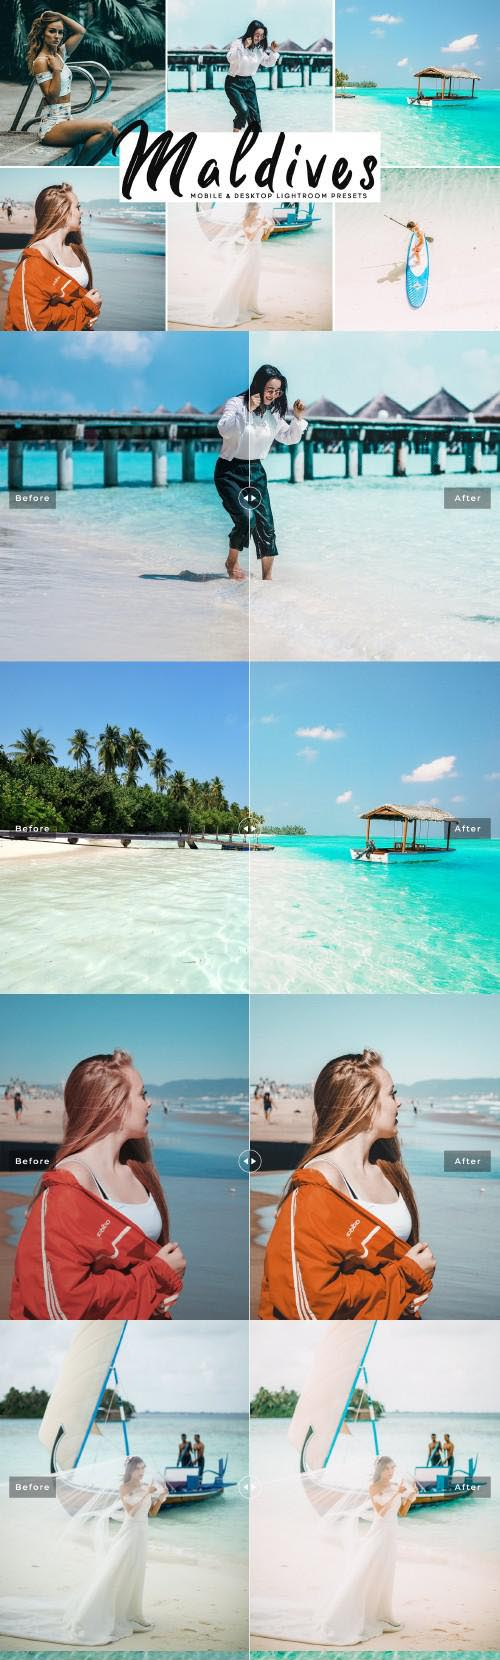 Maldives Lightroom Presets Pack - 3865618